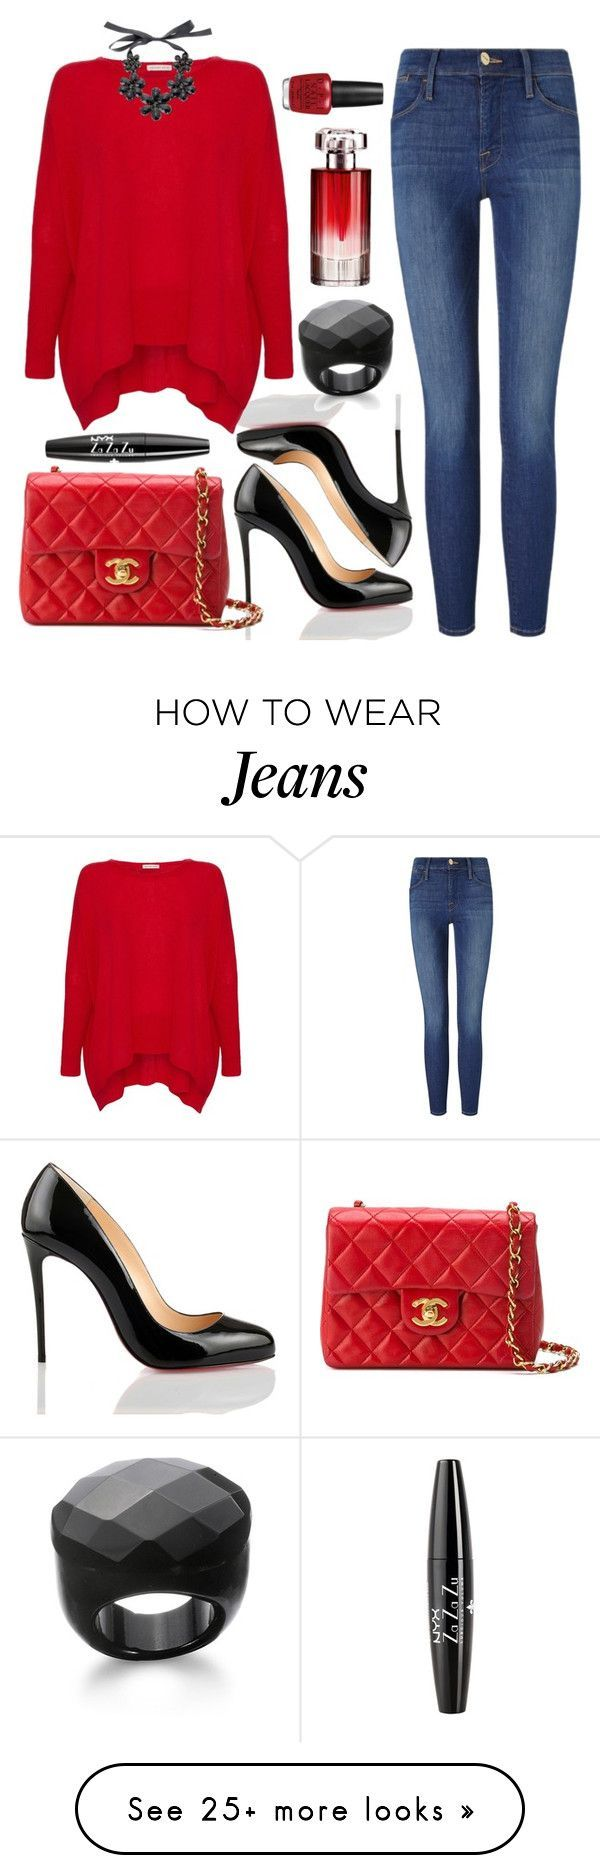 """Untitled #3132"" by natalyasidunova on Polyvore featuring Christian Louboutin, Century Seven, Frame Denim, Chanel, Kenneth Jay Lane, NYX, Lancôme and OPI"